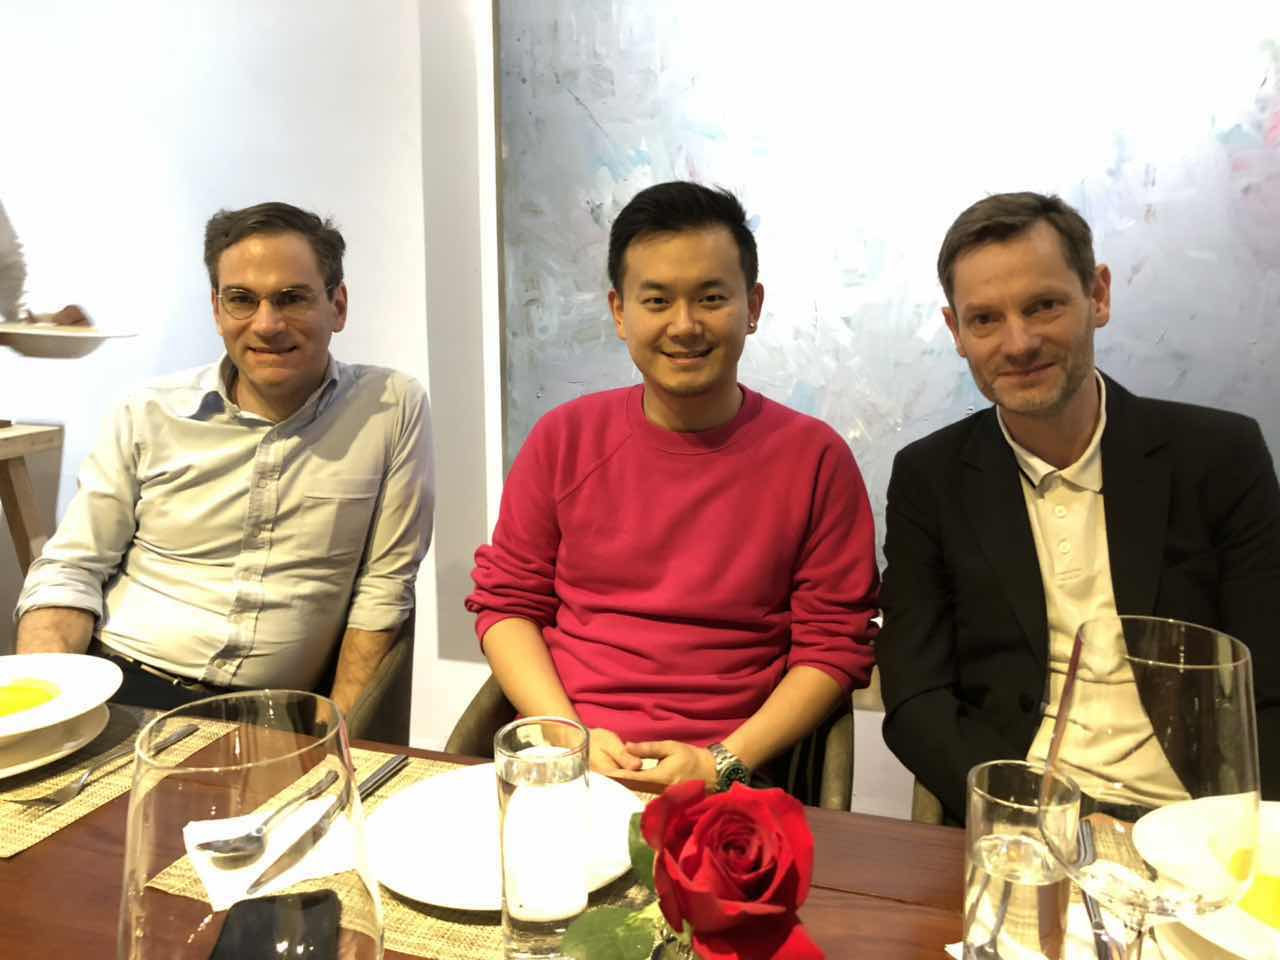 Jury members Philip Tinari, David Chau and Sam Stourdzé